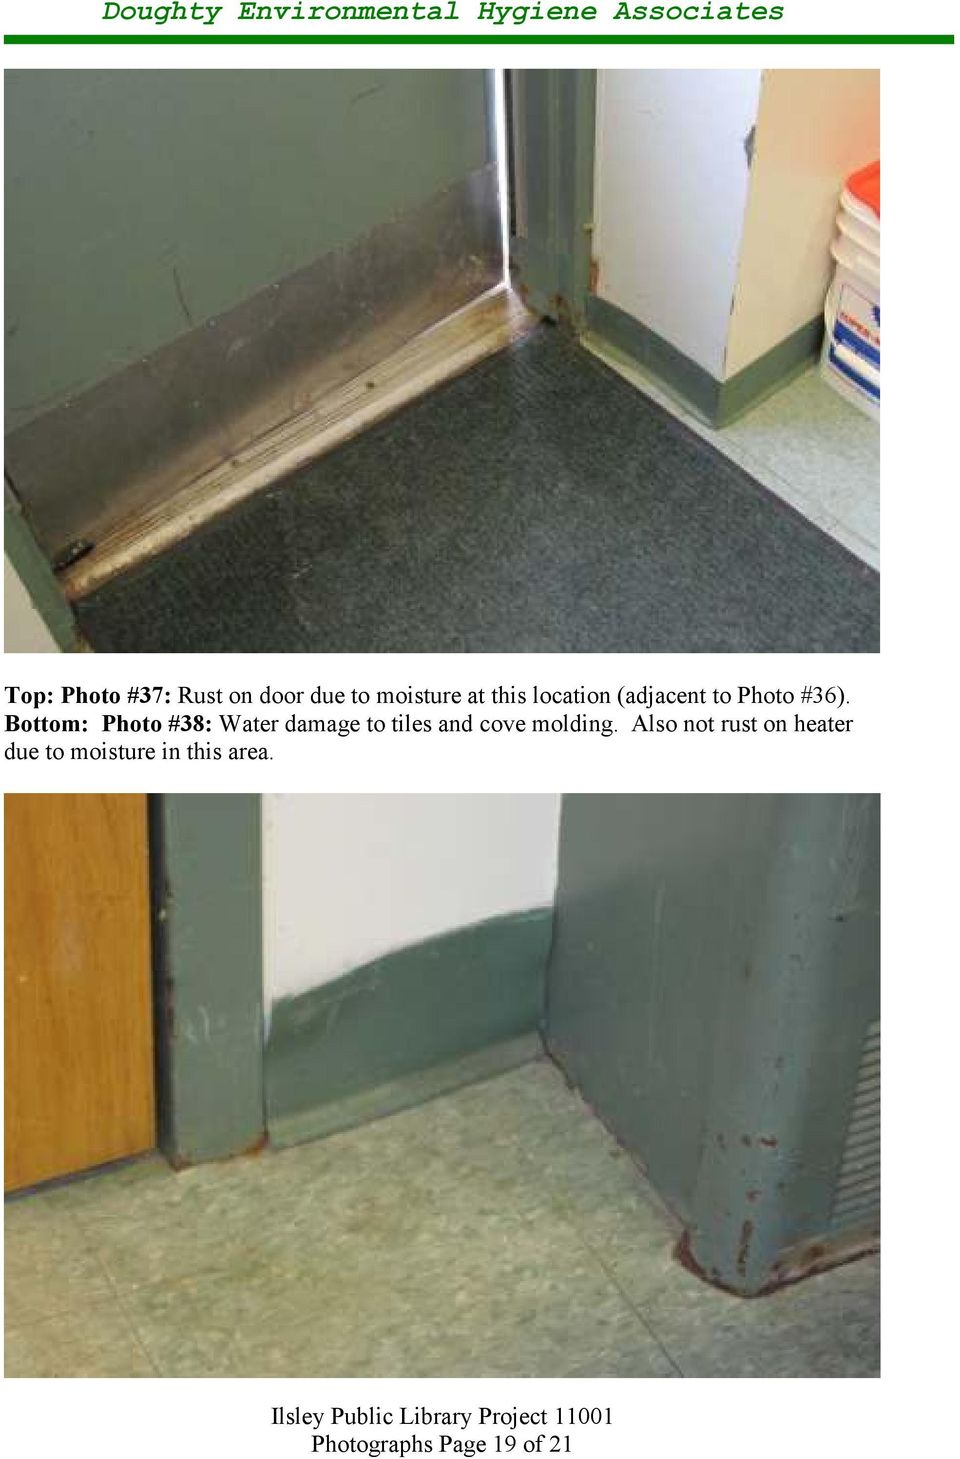 Bottom: Photo #38: Water damage to tiles and cove